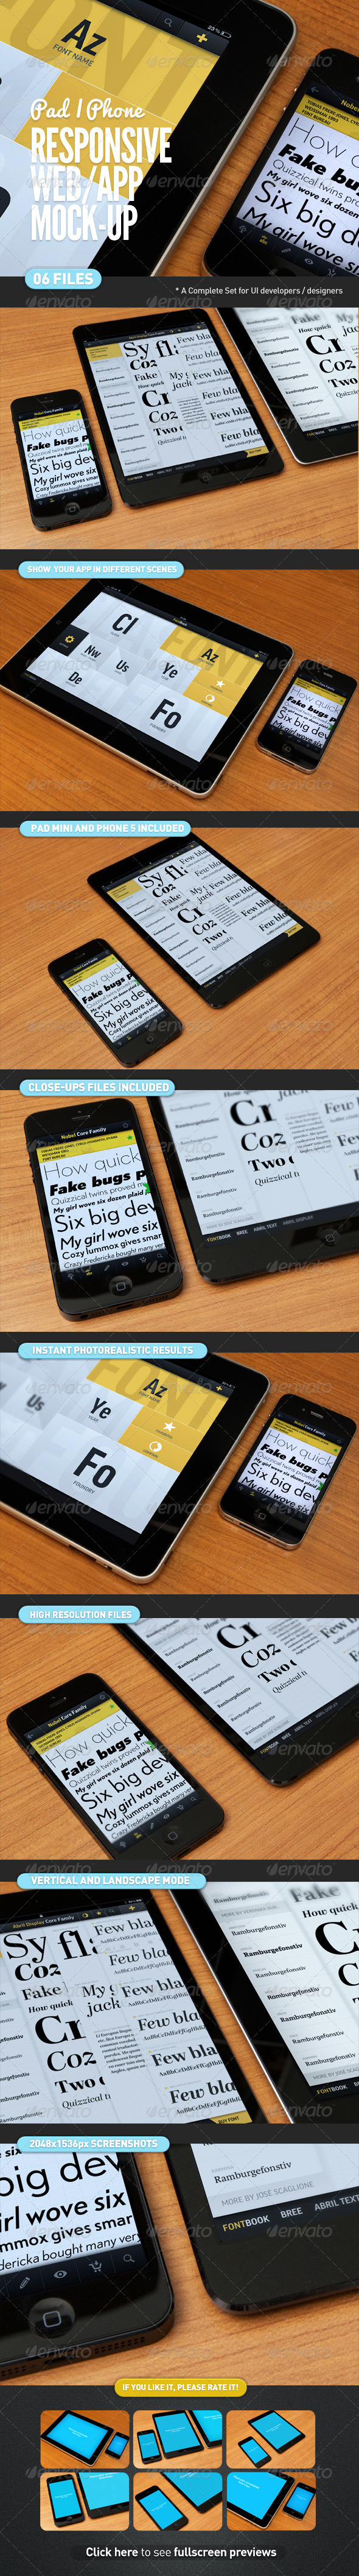 GraphicRiver Responsive Screen Web App Mock-Up 4350435